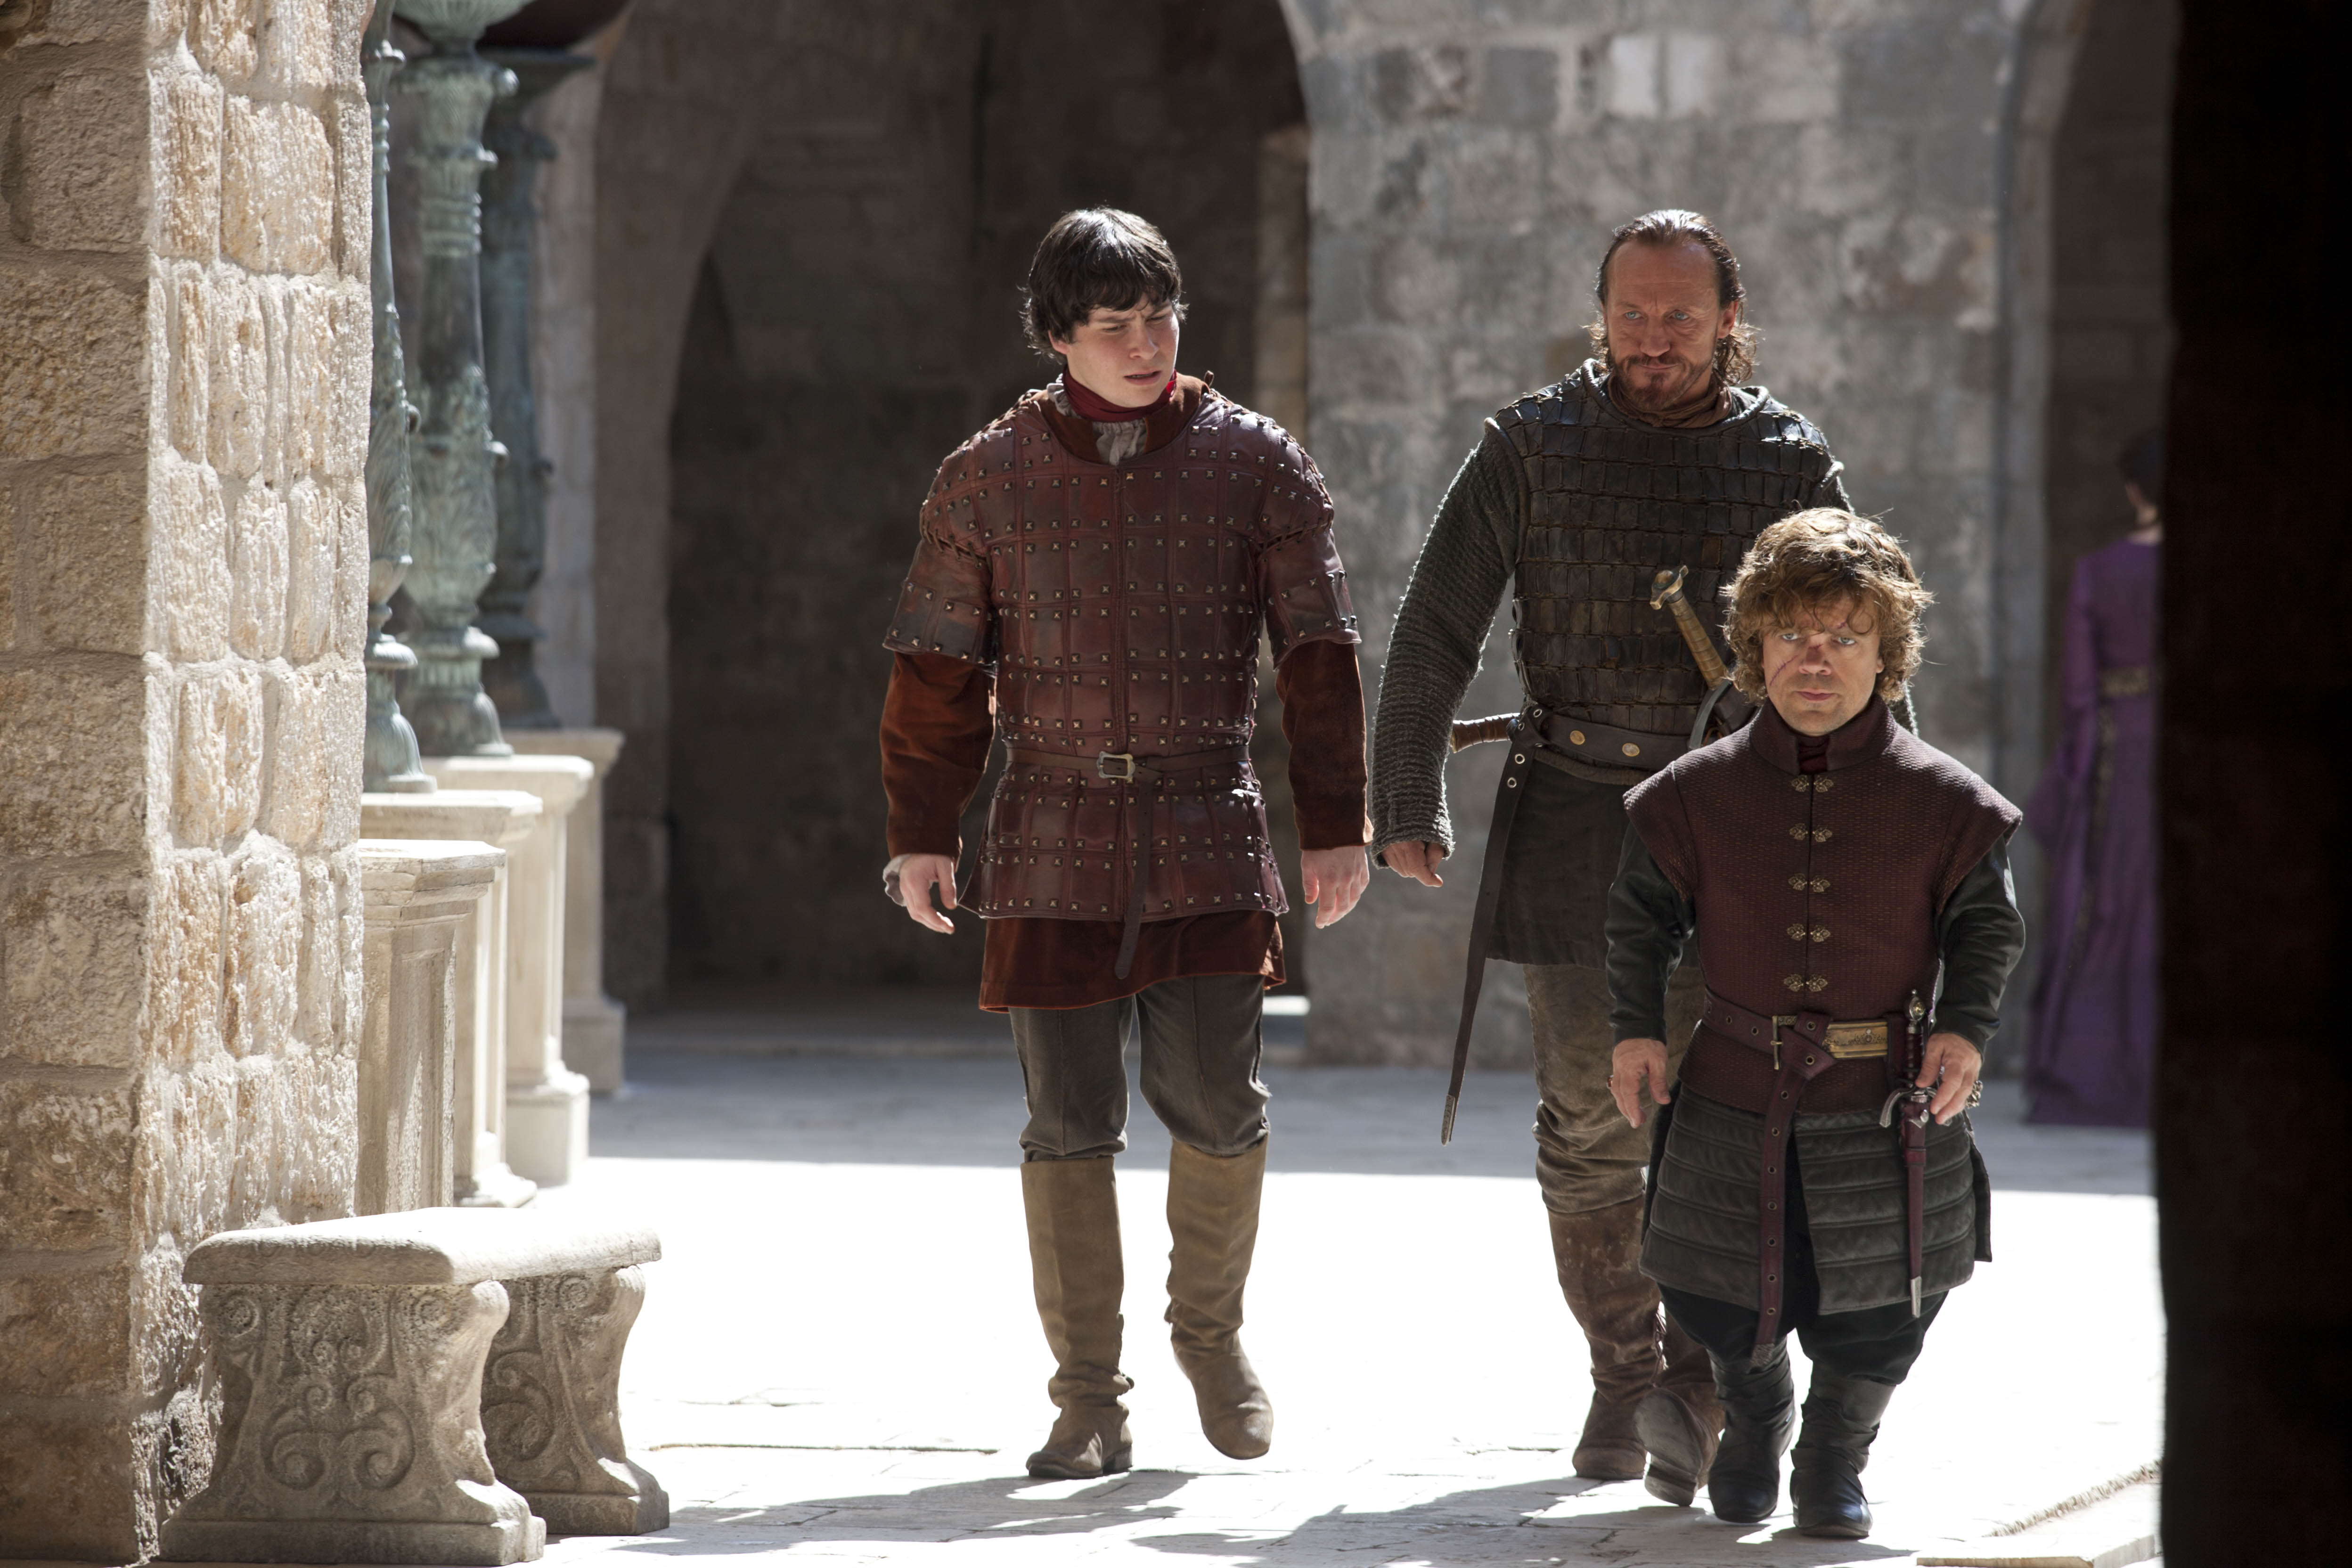 Tyrion Lannister returns in Game Of Thrones season 3